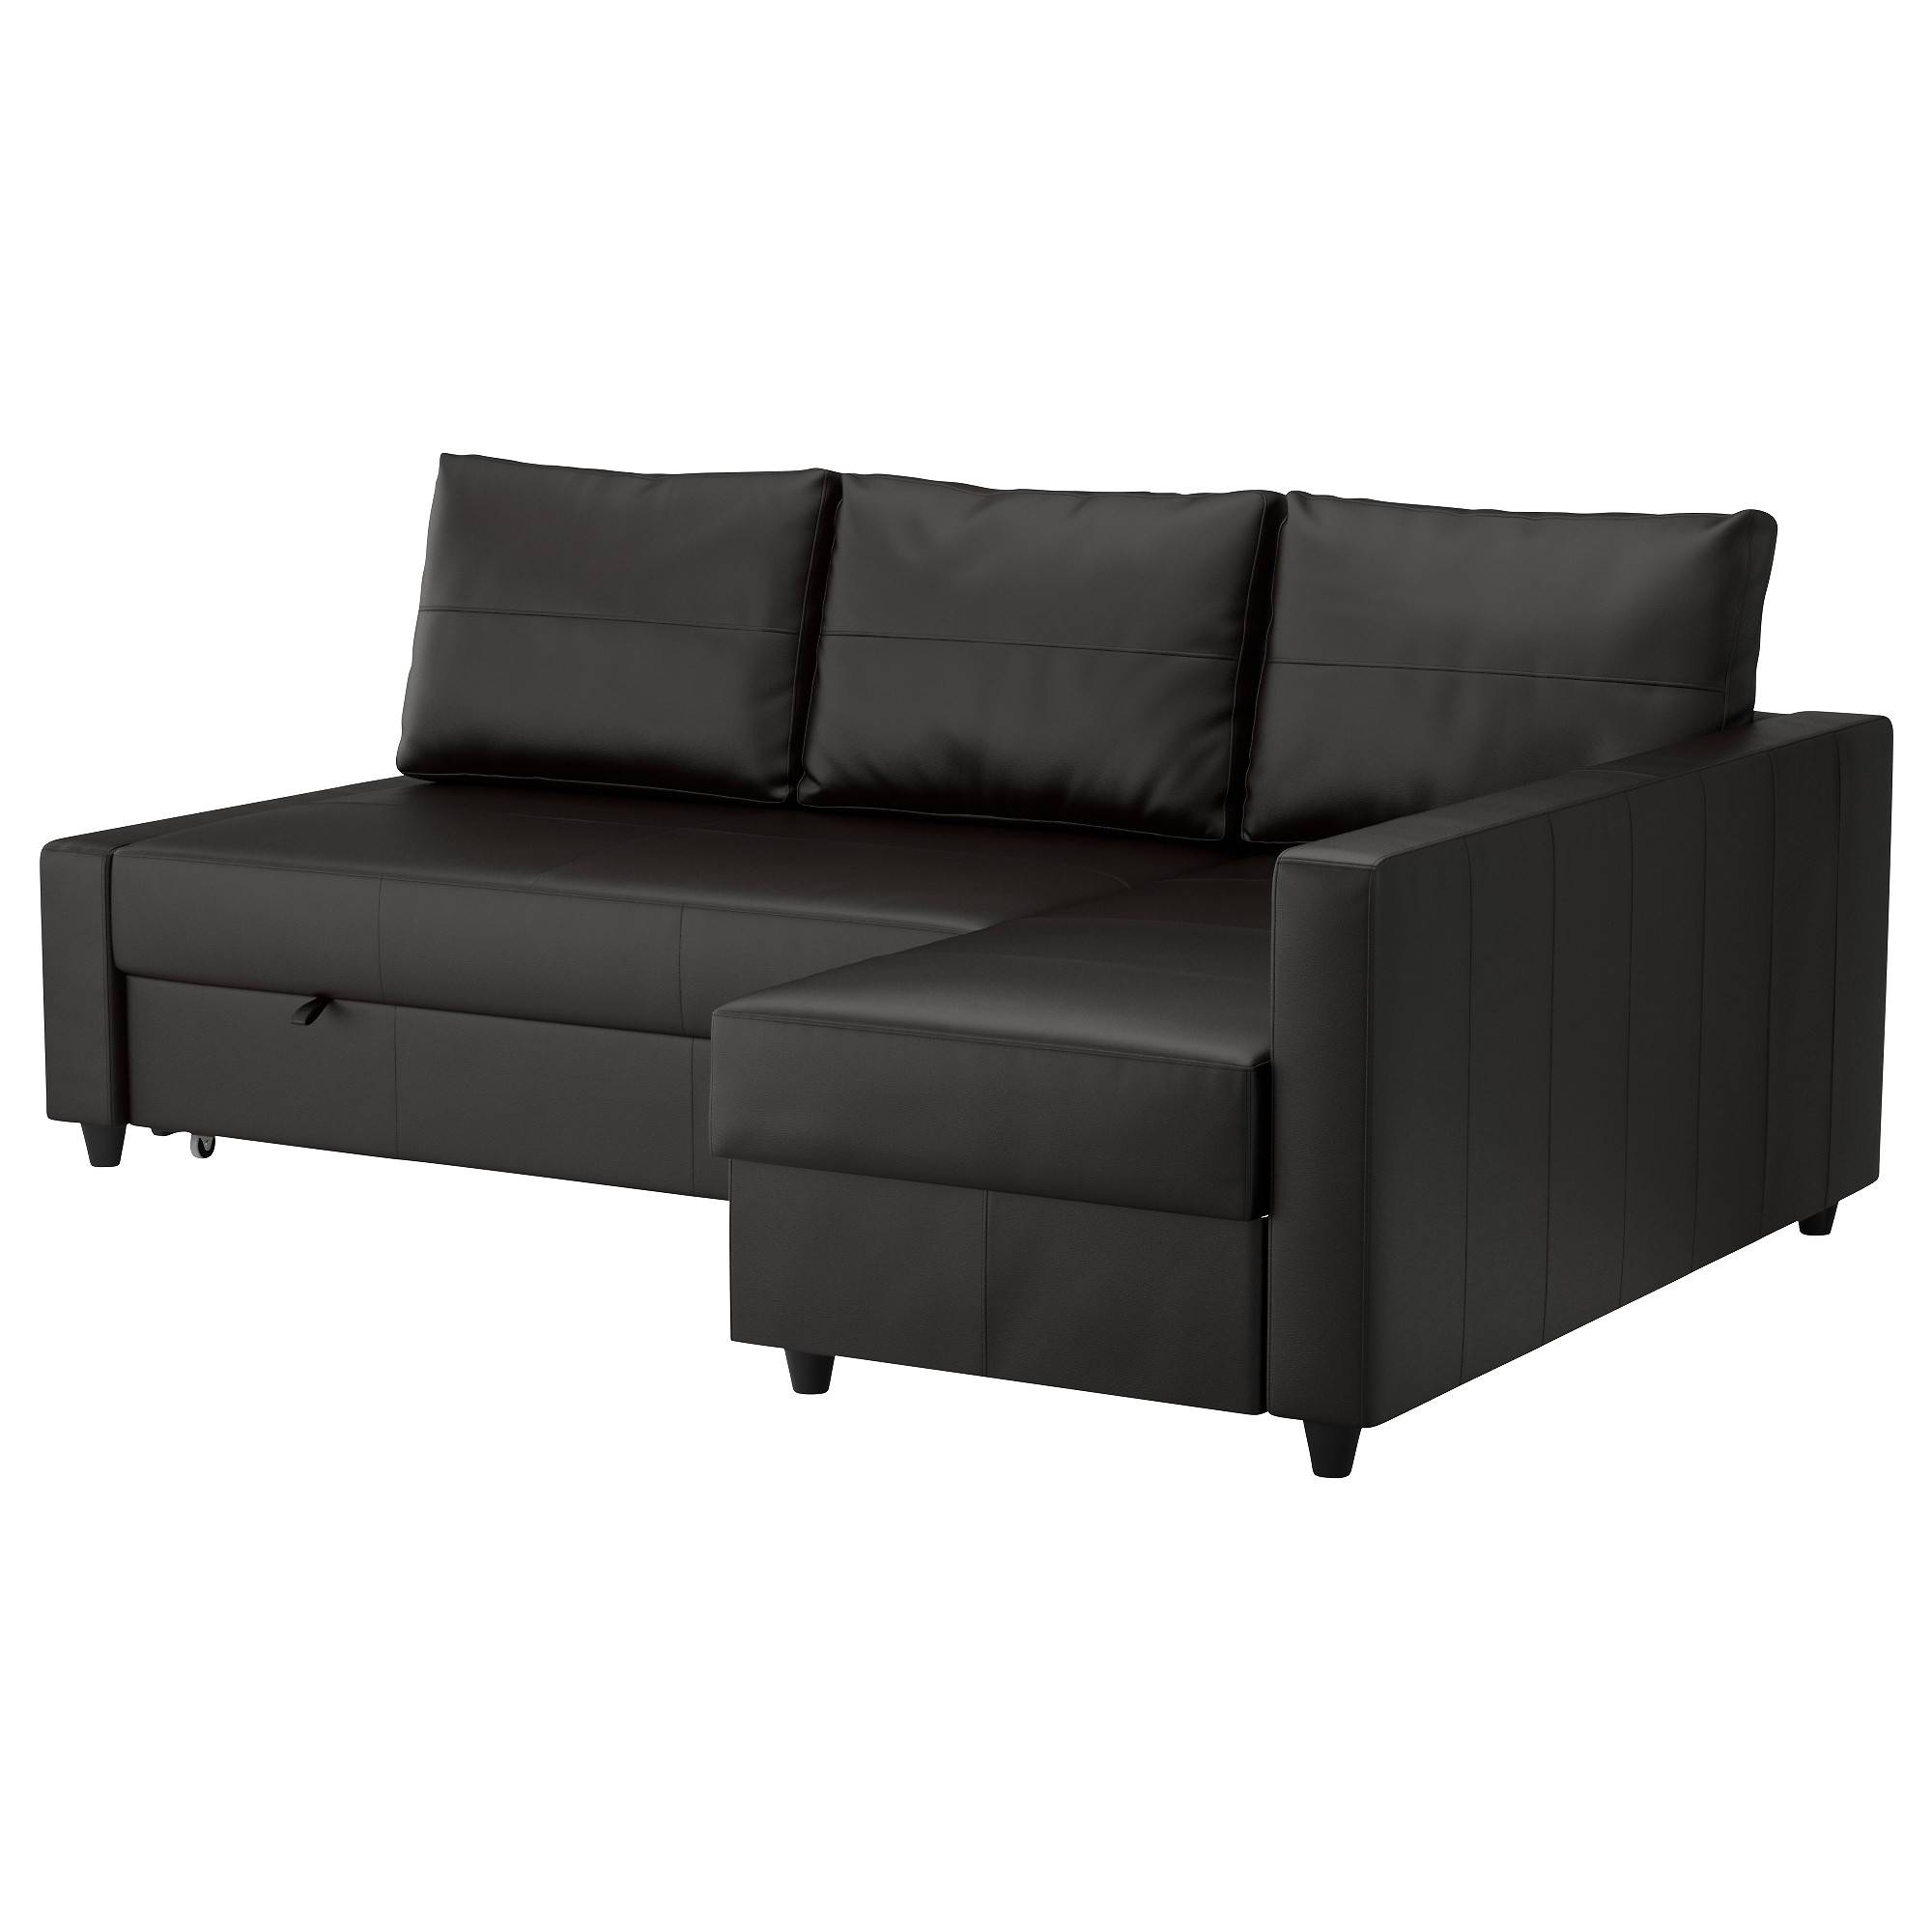 Friheten Corner Sofa-Bed With Storage Bomstad Black - Ikea for Corner Couch Bed (Image 16 of 30)